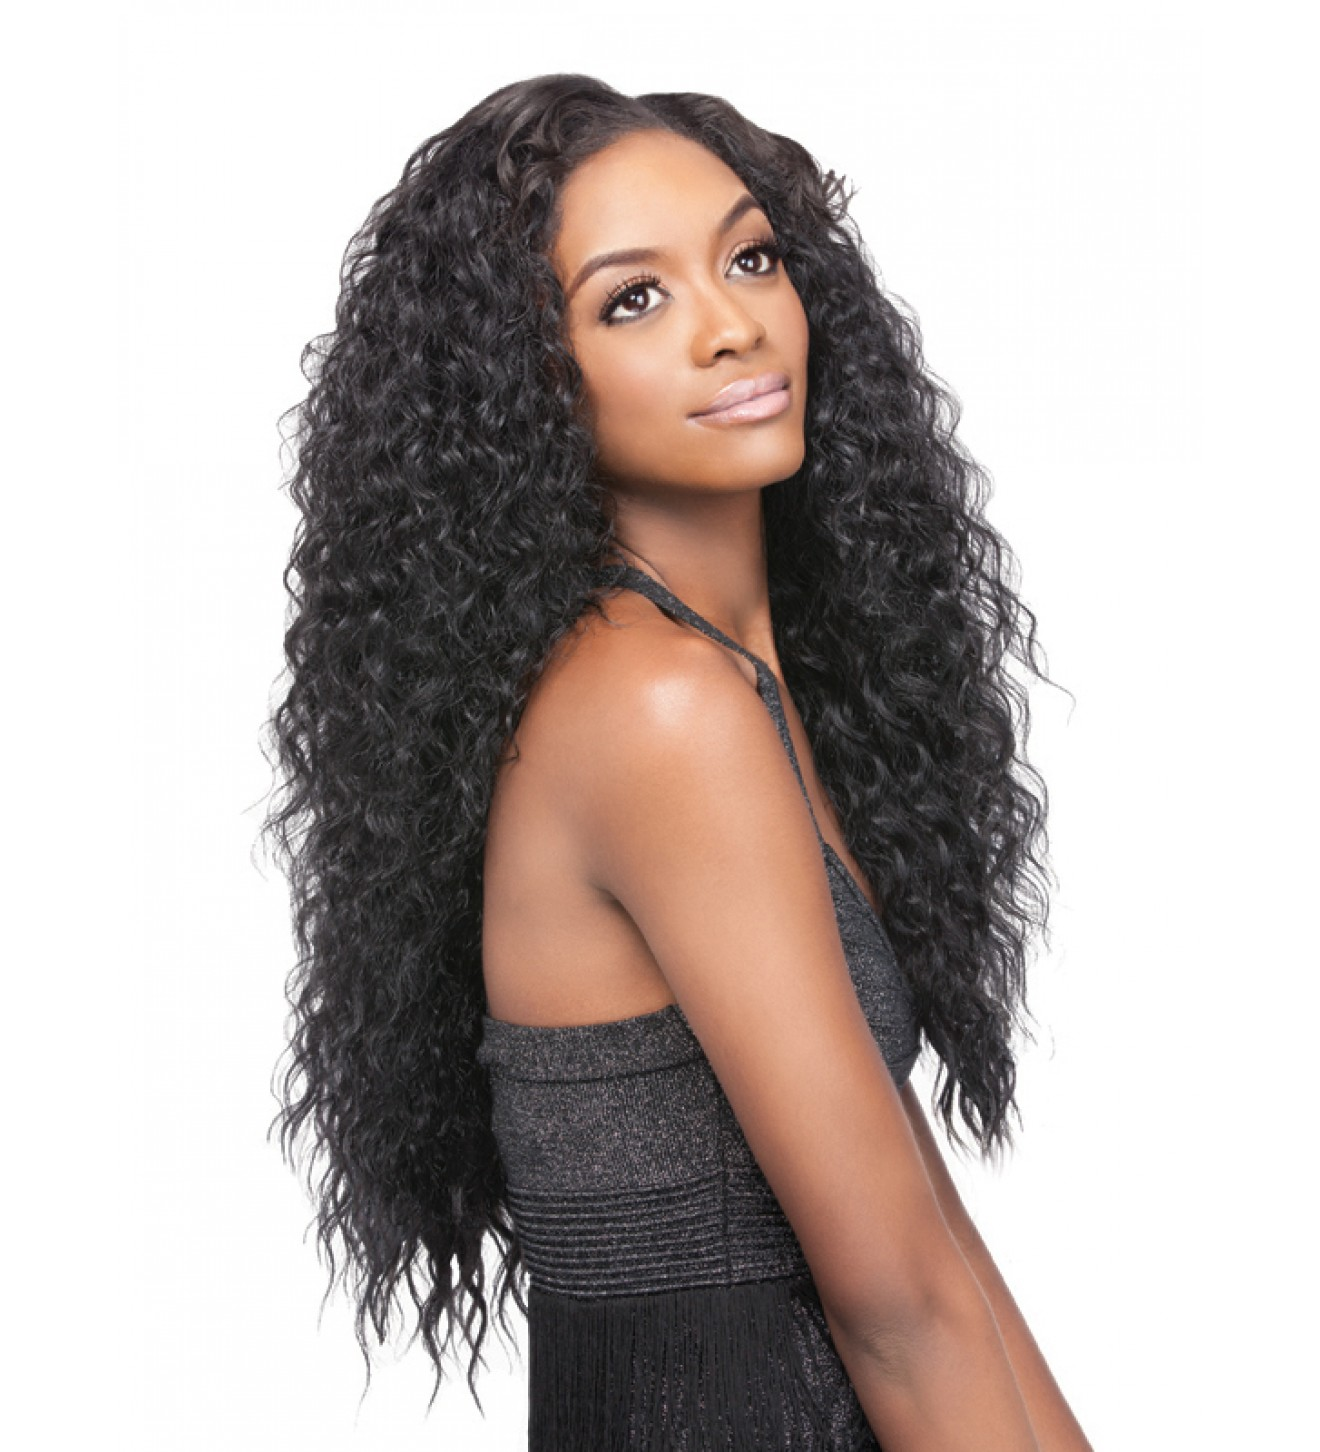 Brazilian Remy Hair - The Curly Look | Chocolate Informed Online ...